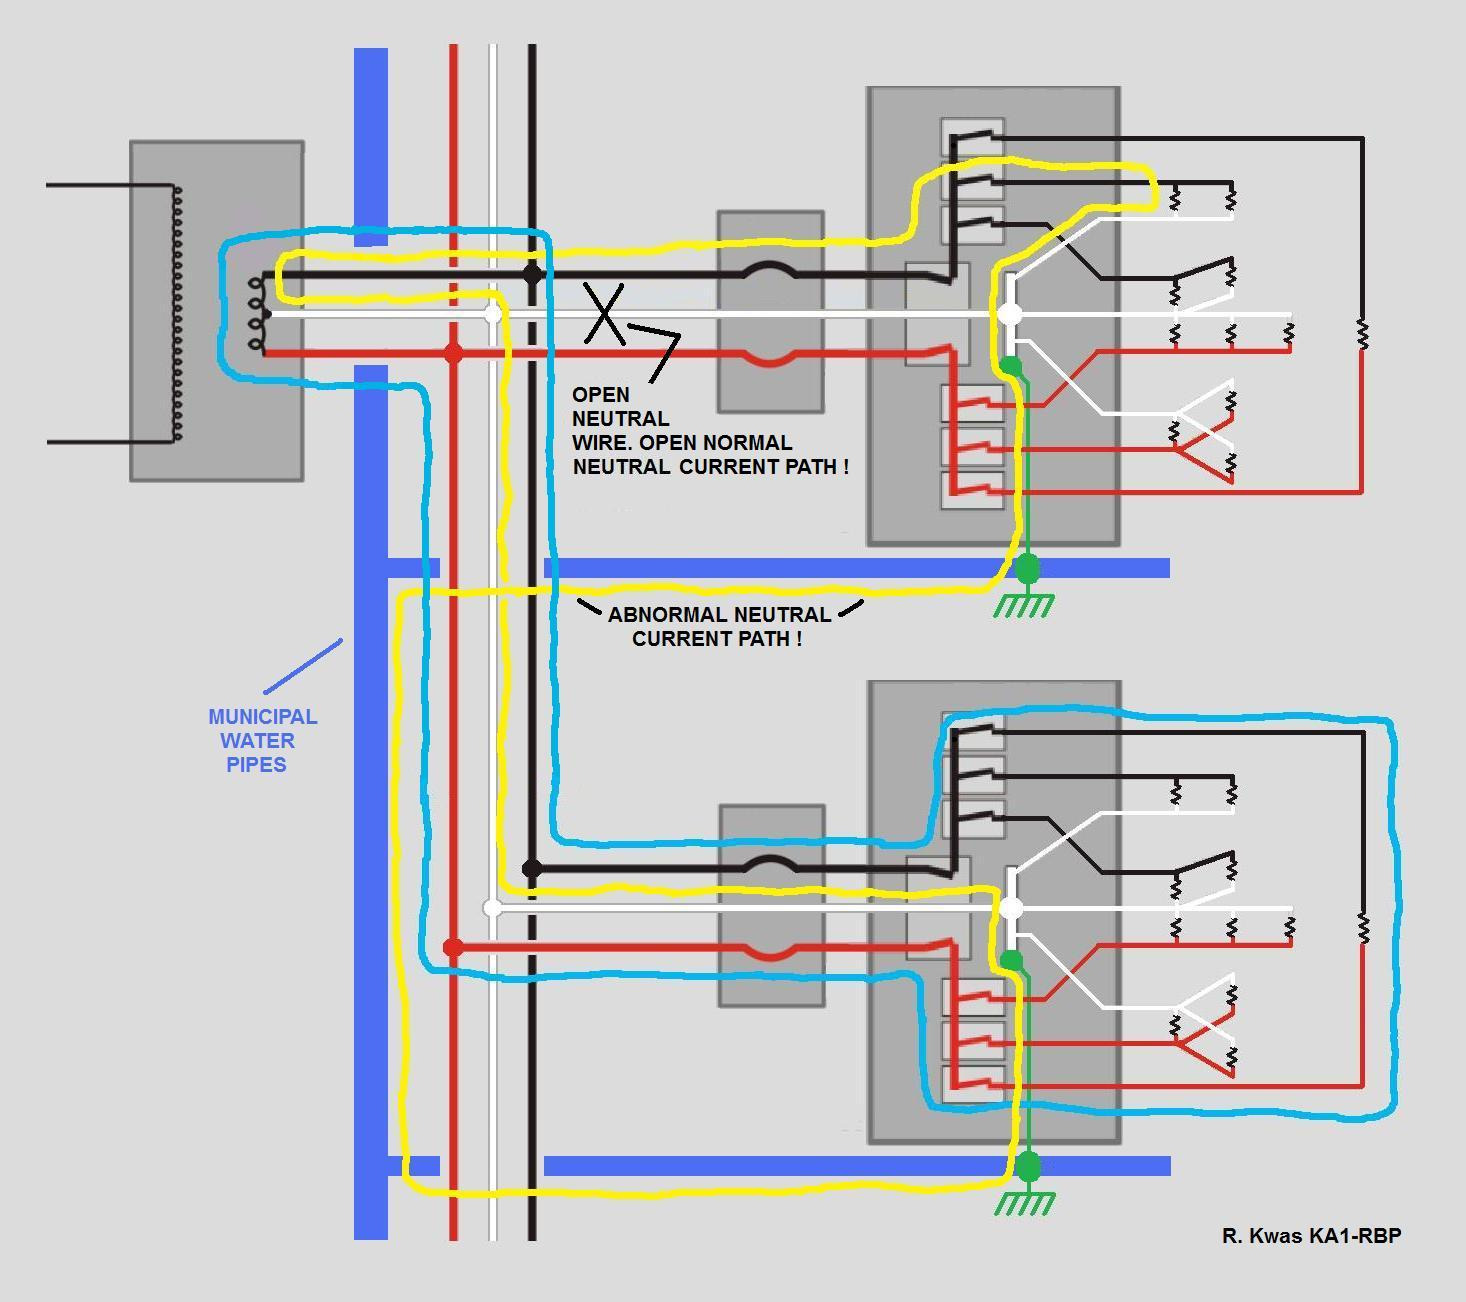 power distrib normal with open neutral fault condition, house wiring